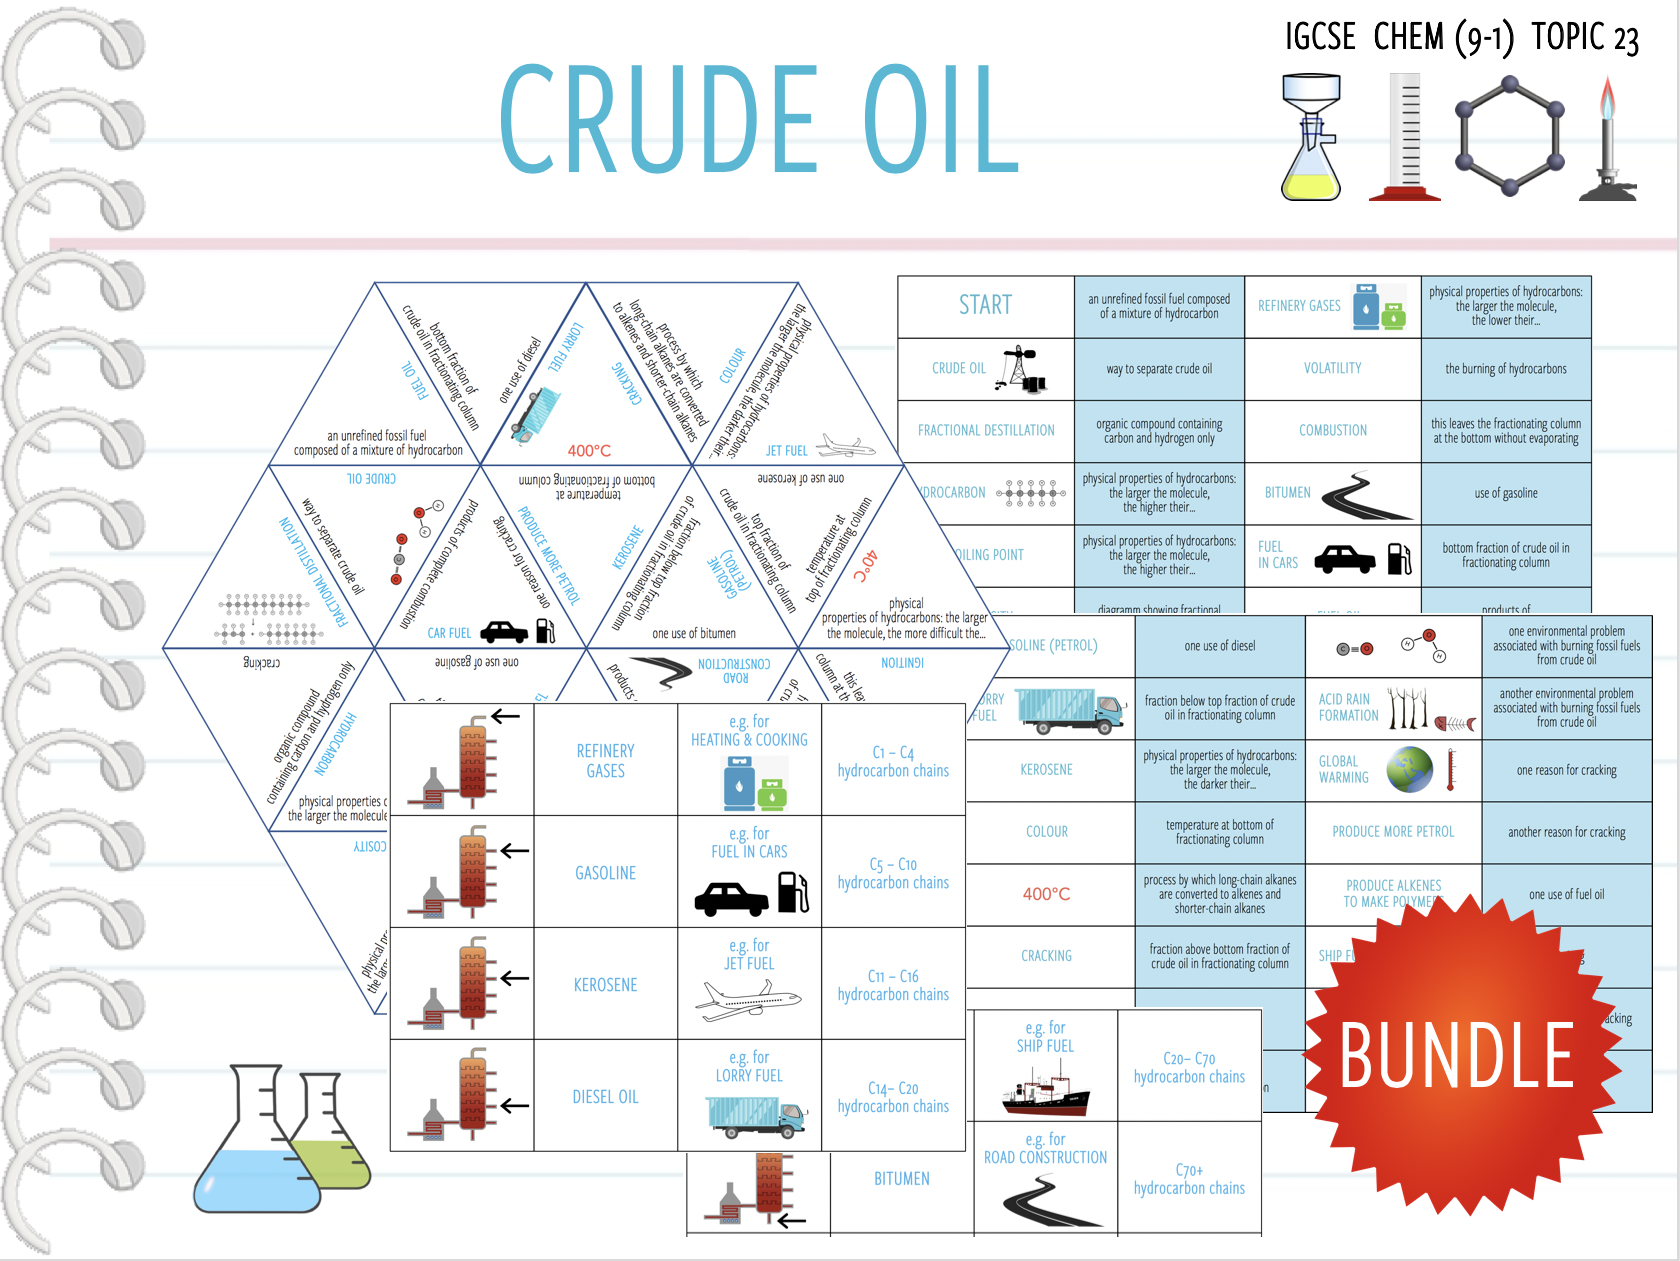 IGCSE Chemistry Topic 23: Crude Oil - 3x Games and activities (KS4)